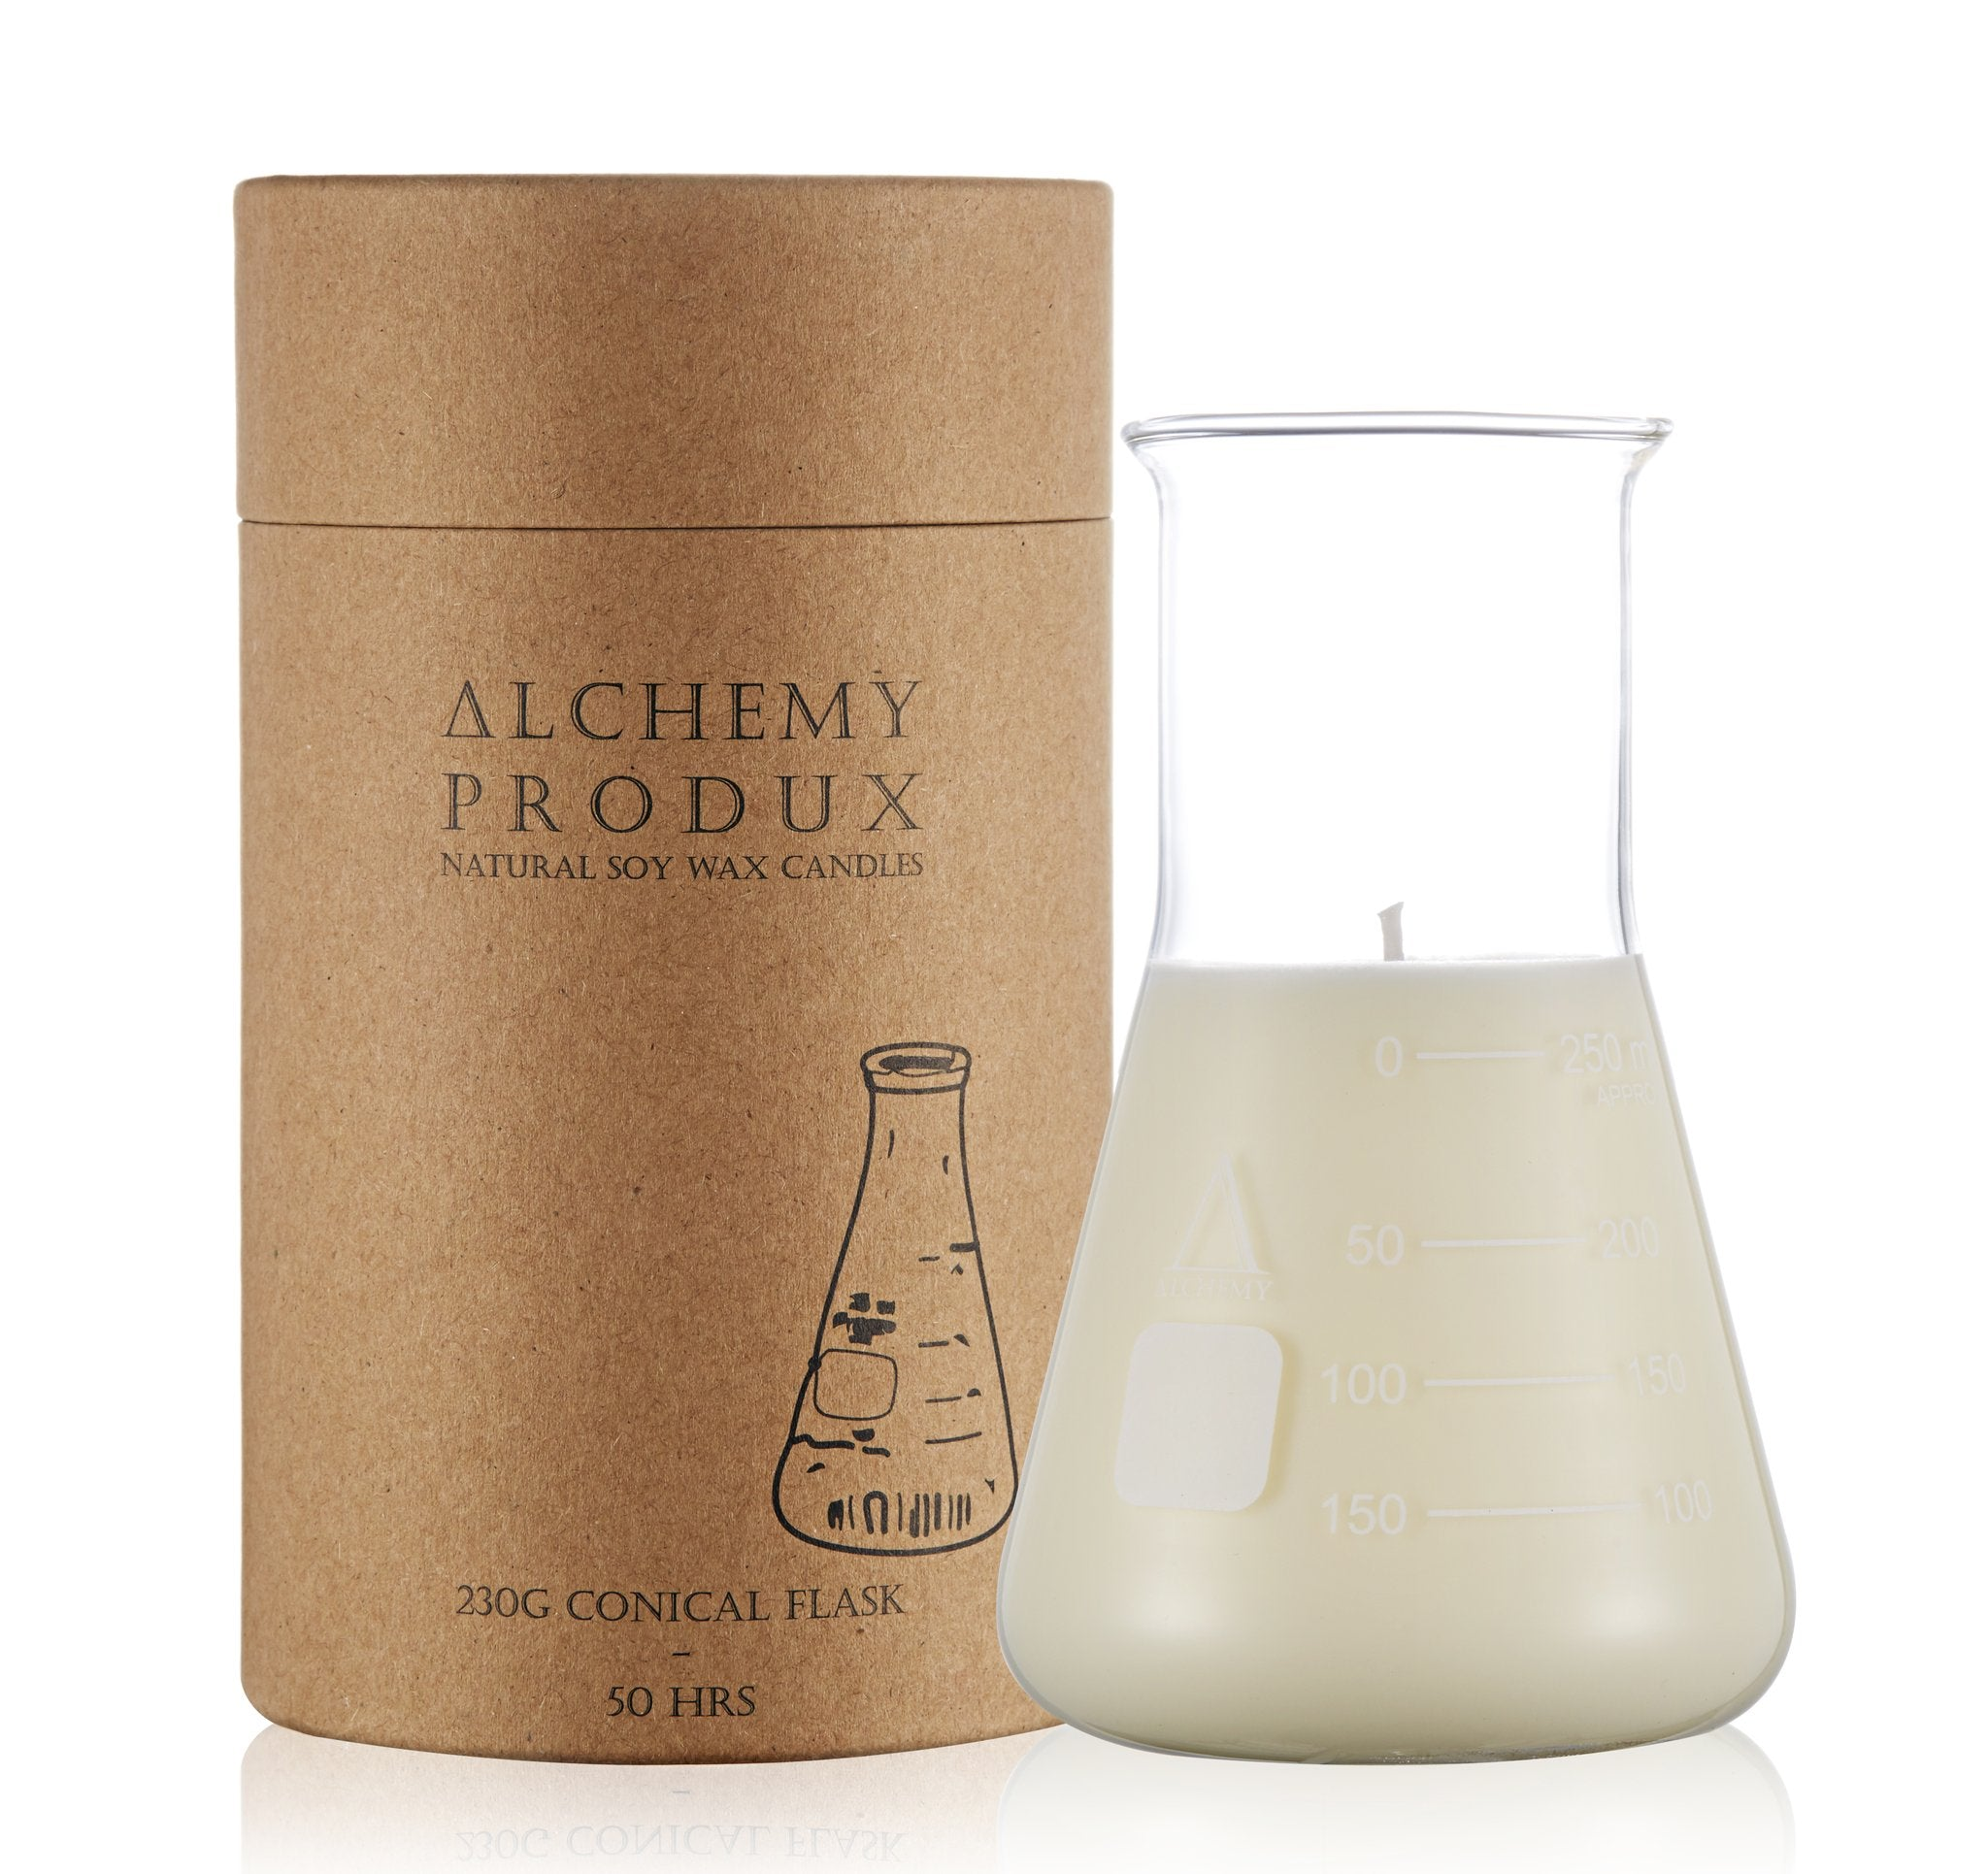 230g Conical Flask Candle | Alchemy Produx